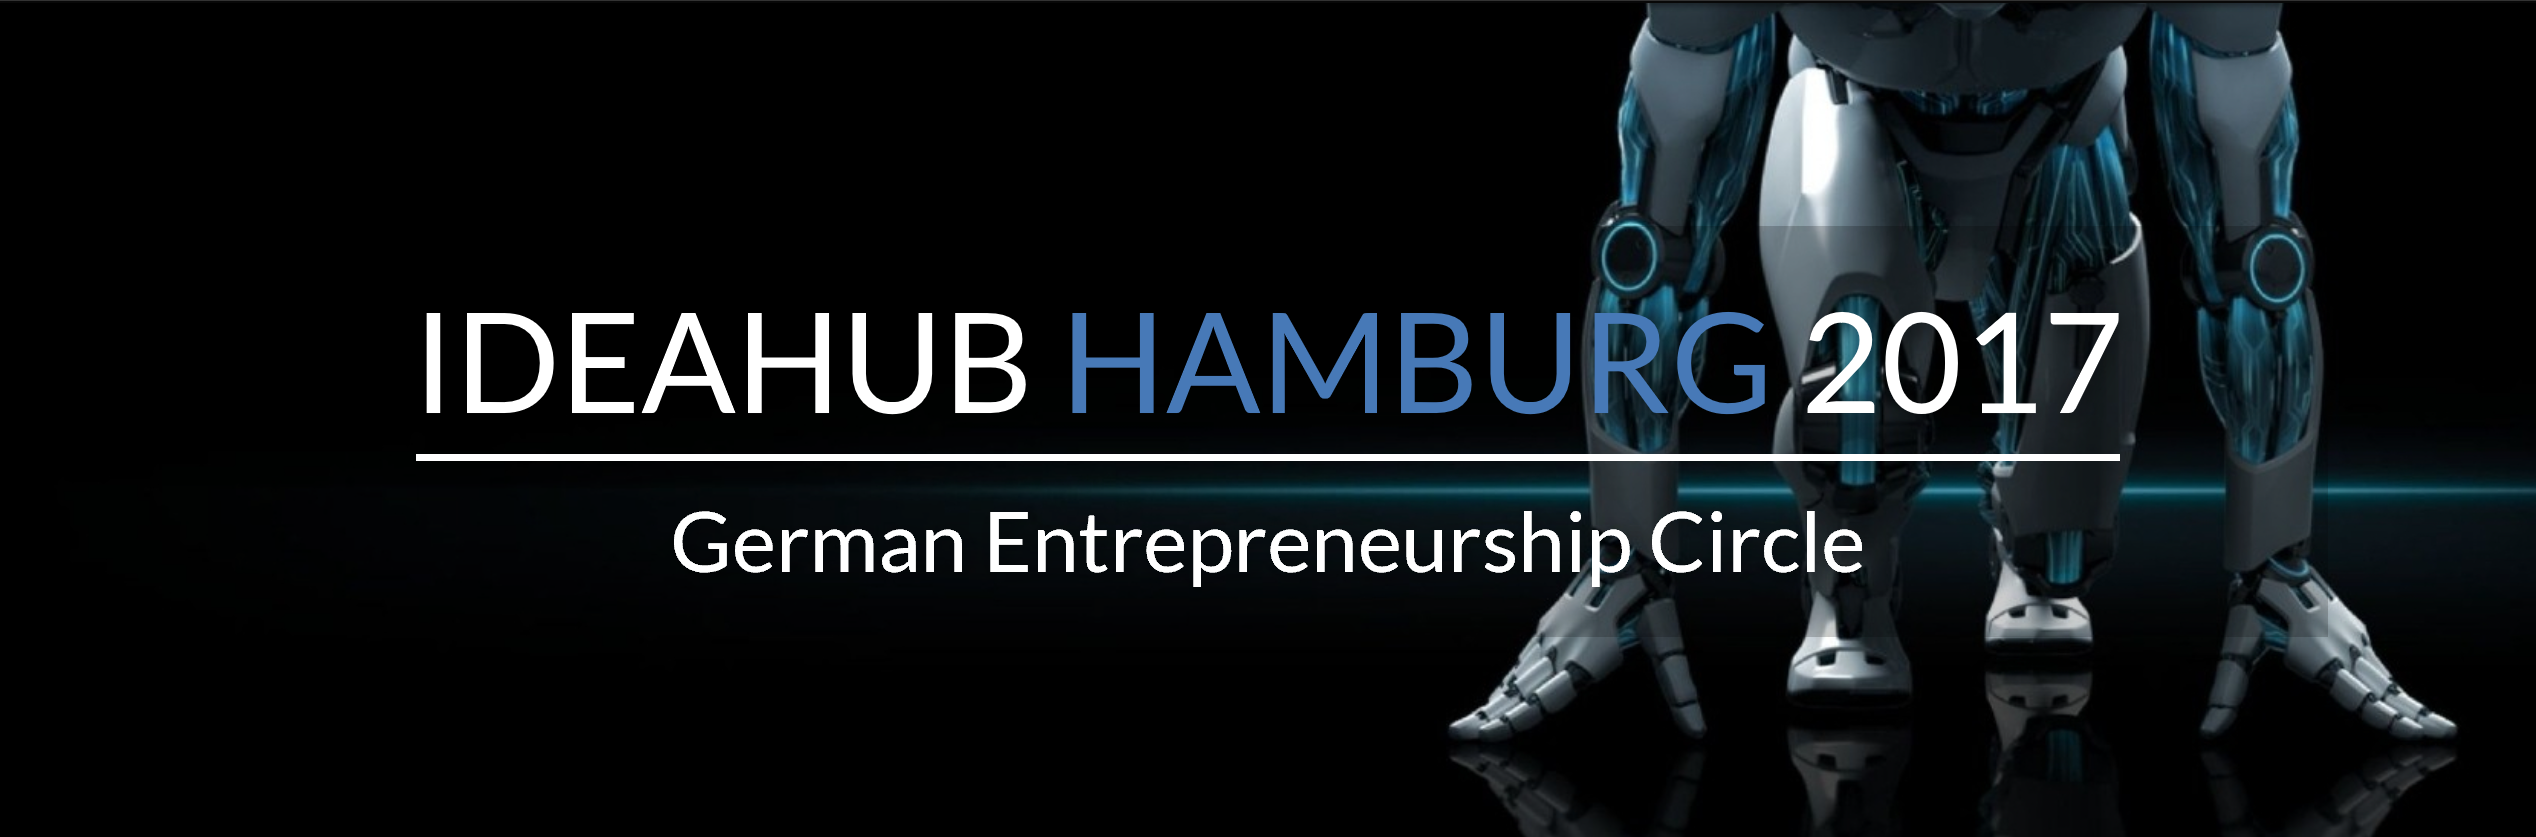 GEC IdeaHub Healthcare | 19-21 May 2017 Hamburg